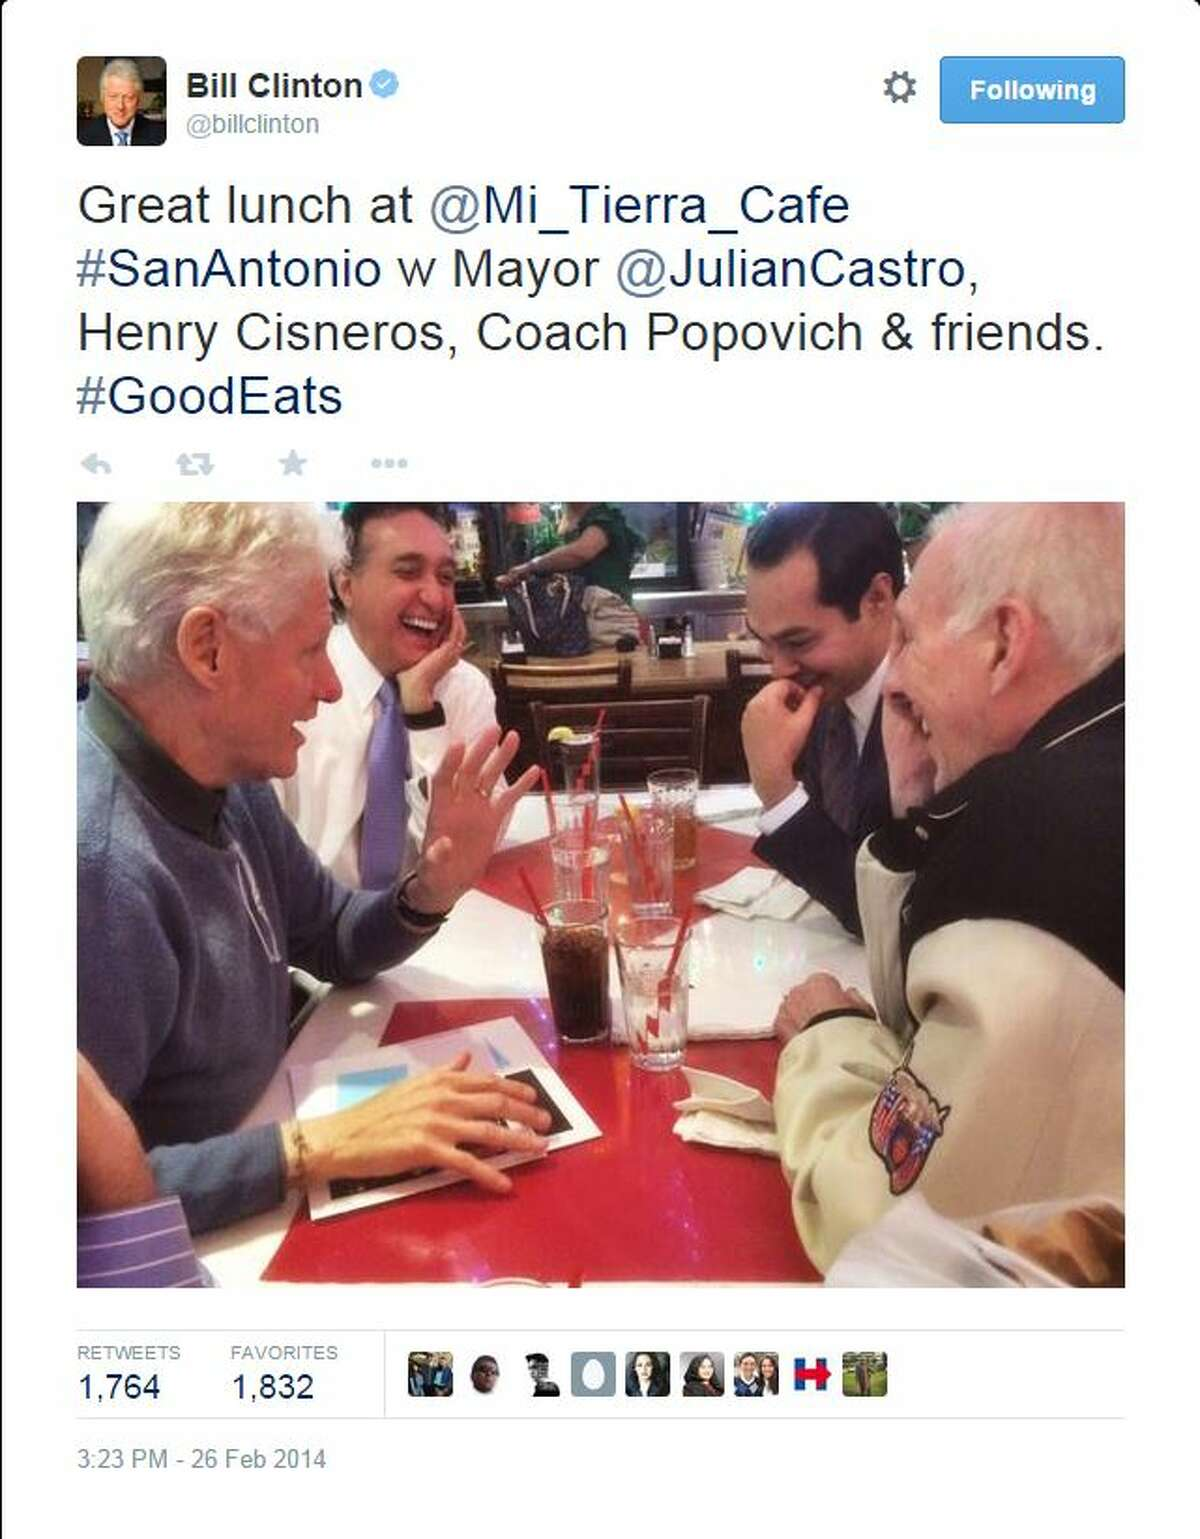 It seems whenever the Clintons are in town they hit up Mi Tierra, just as they did in the 1970s, with the green chicken enchiladas calling their name. Bill Clinton is a vegan now, but he has been known to cheat.